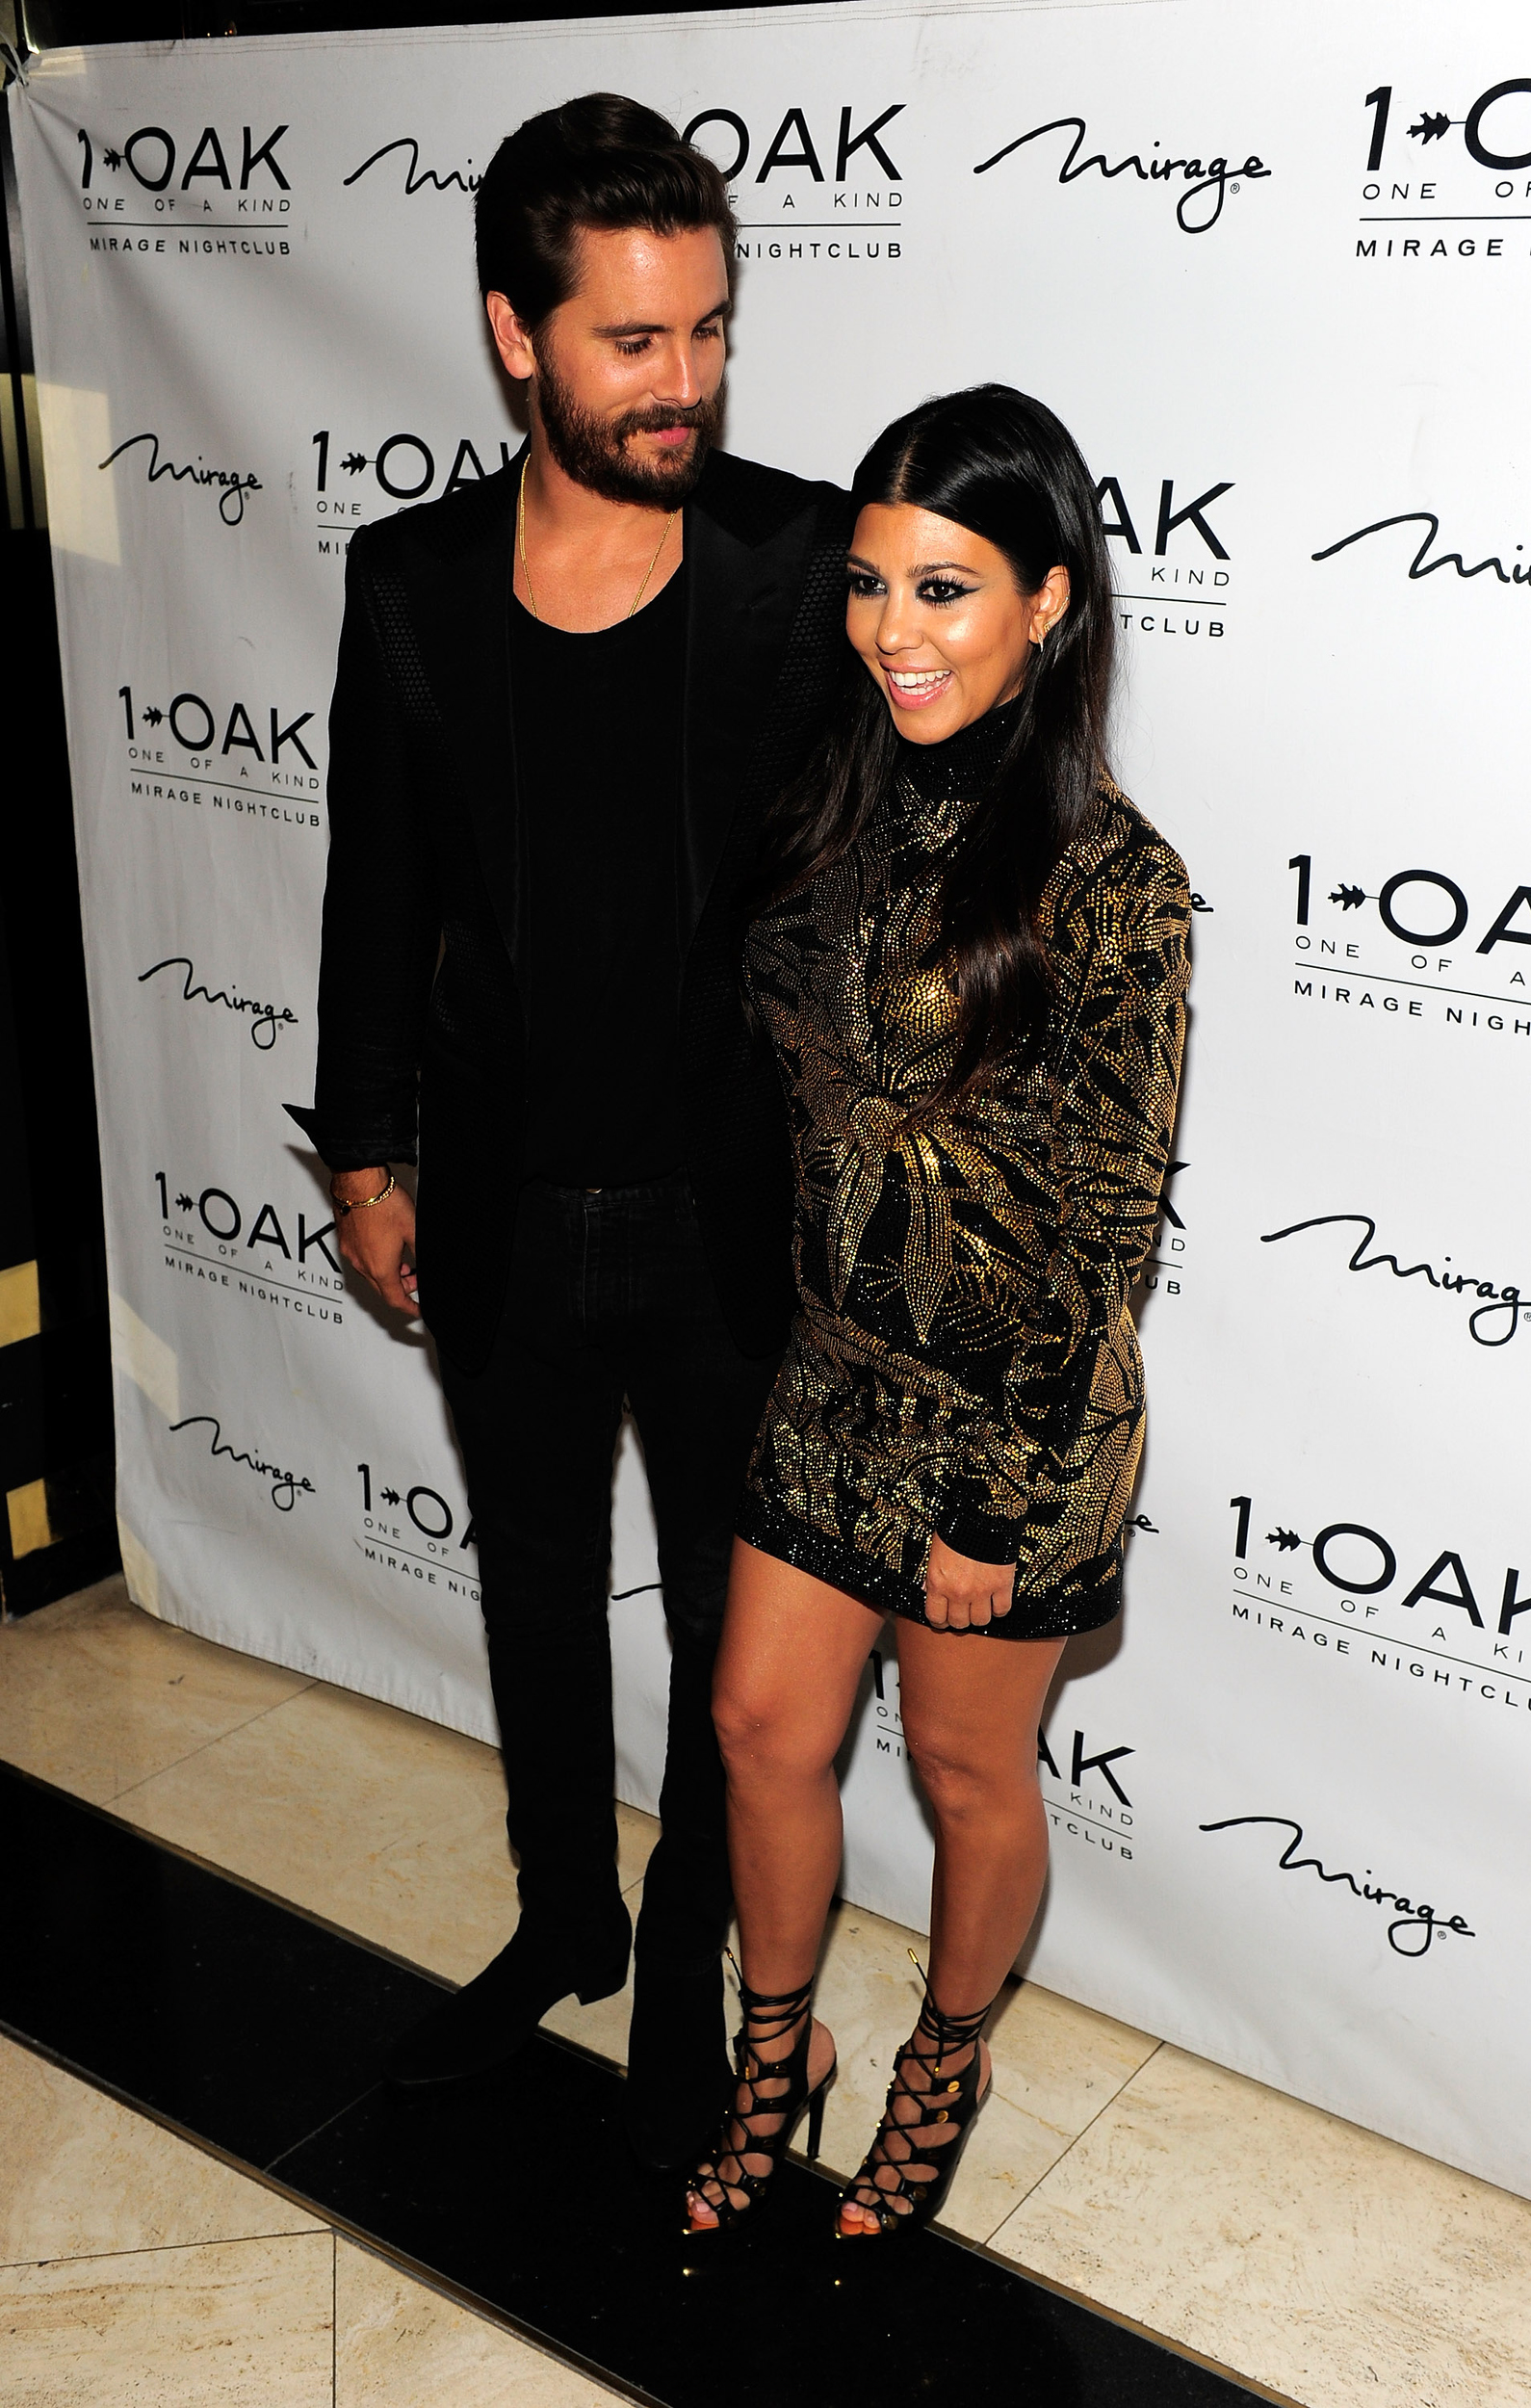 Has surprised Scott disick and kourtney kardashian remarkable, rather